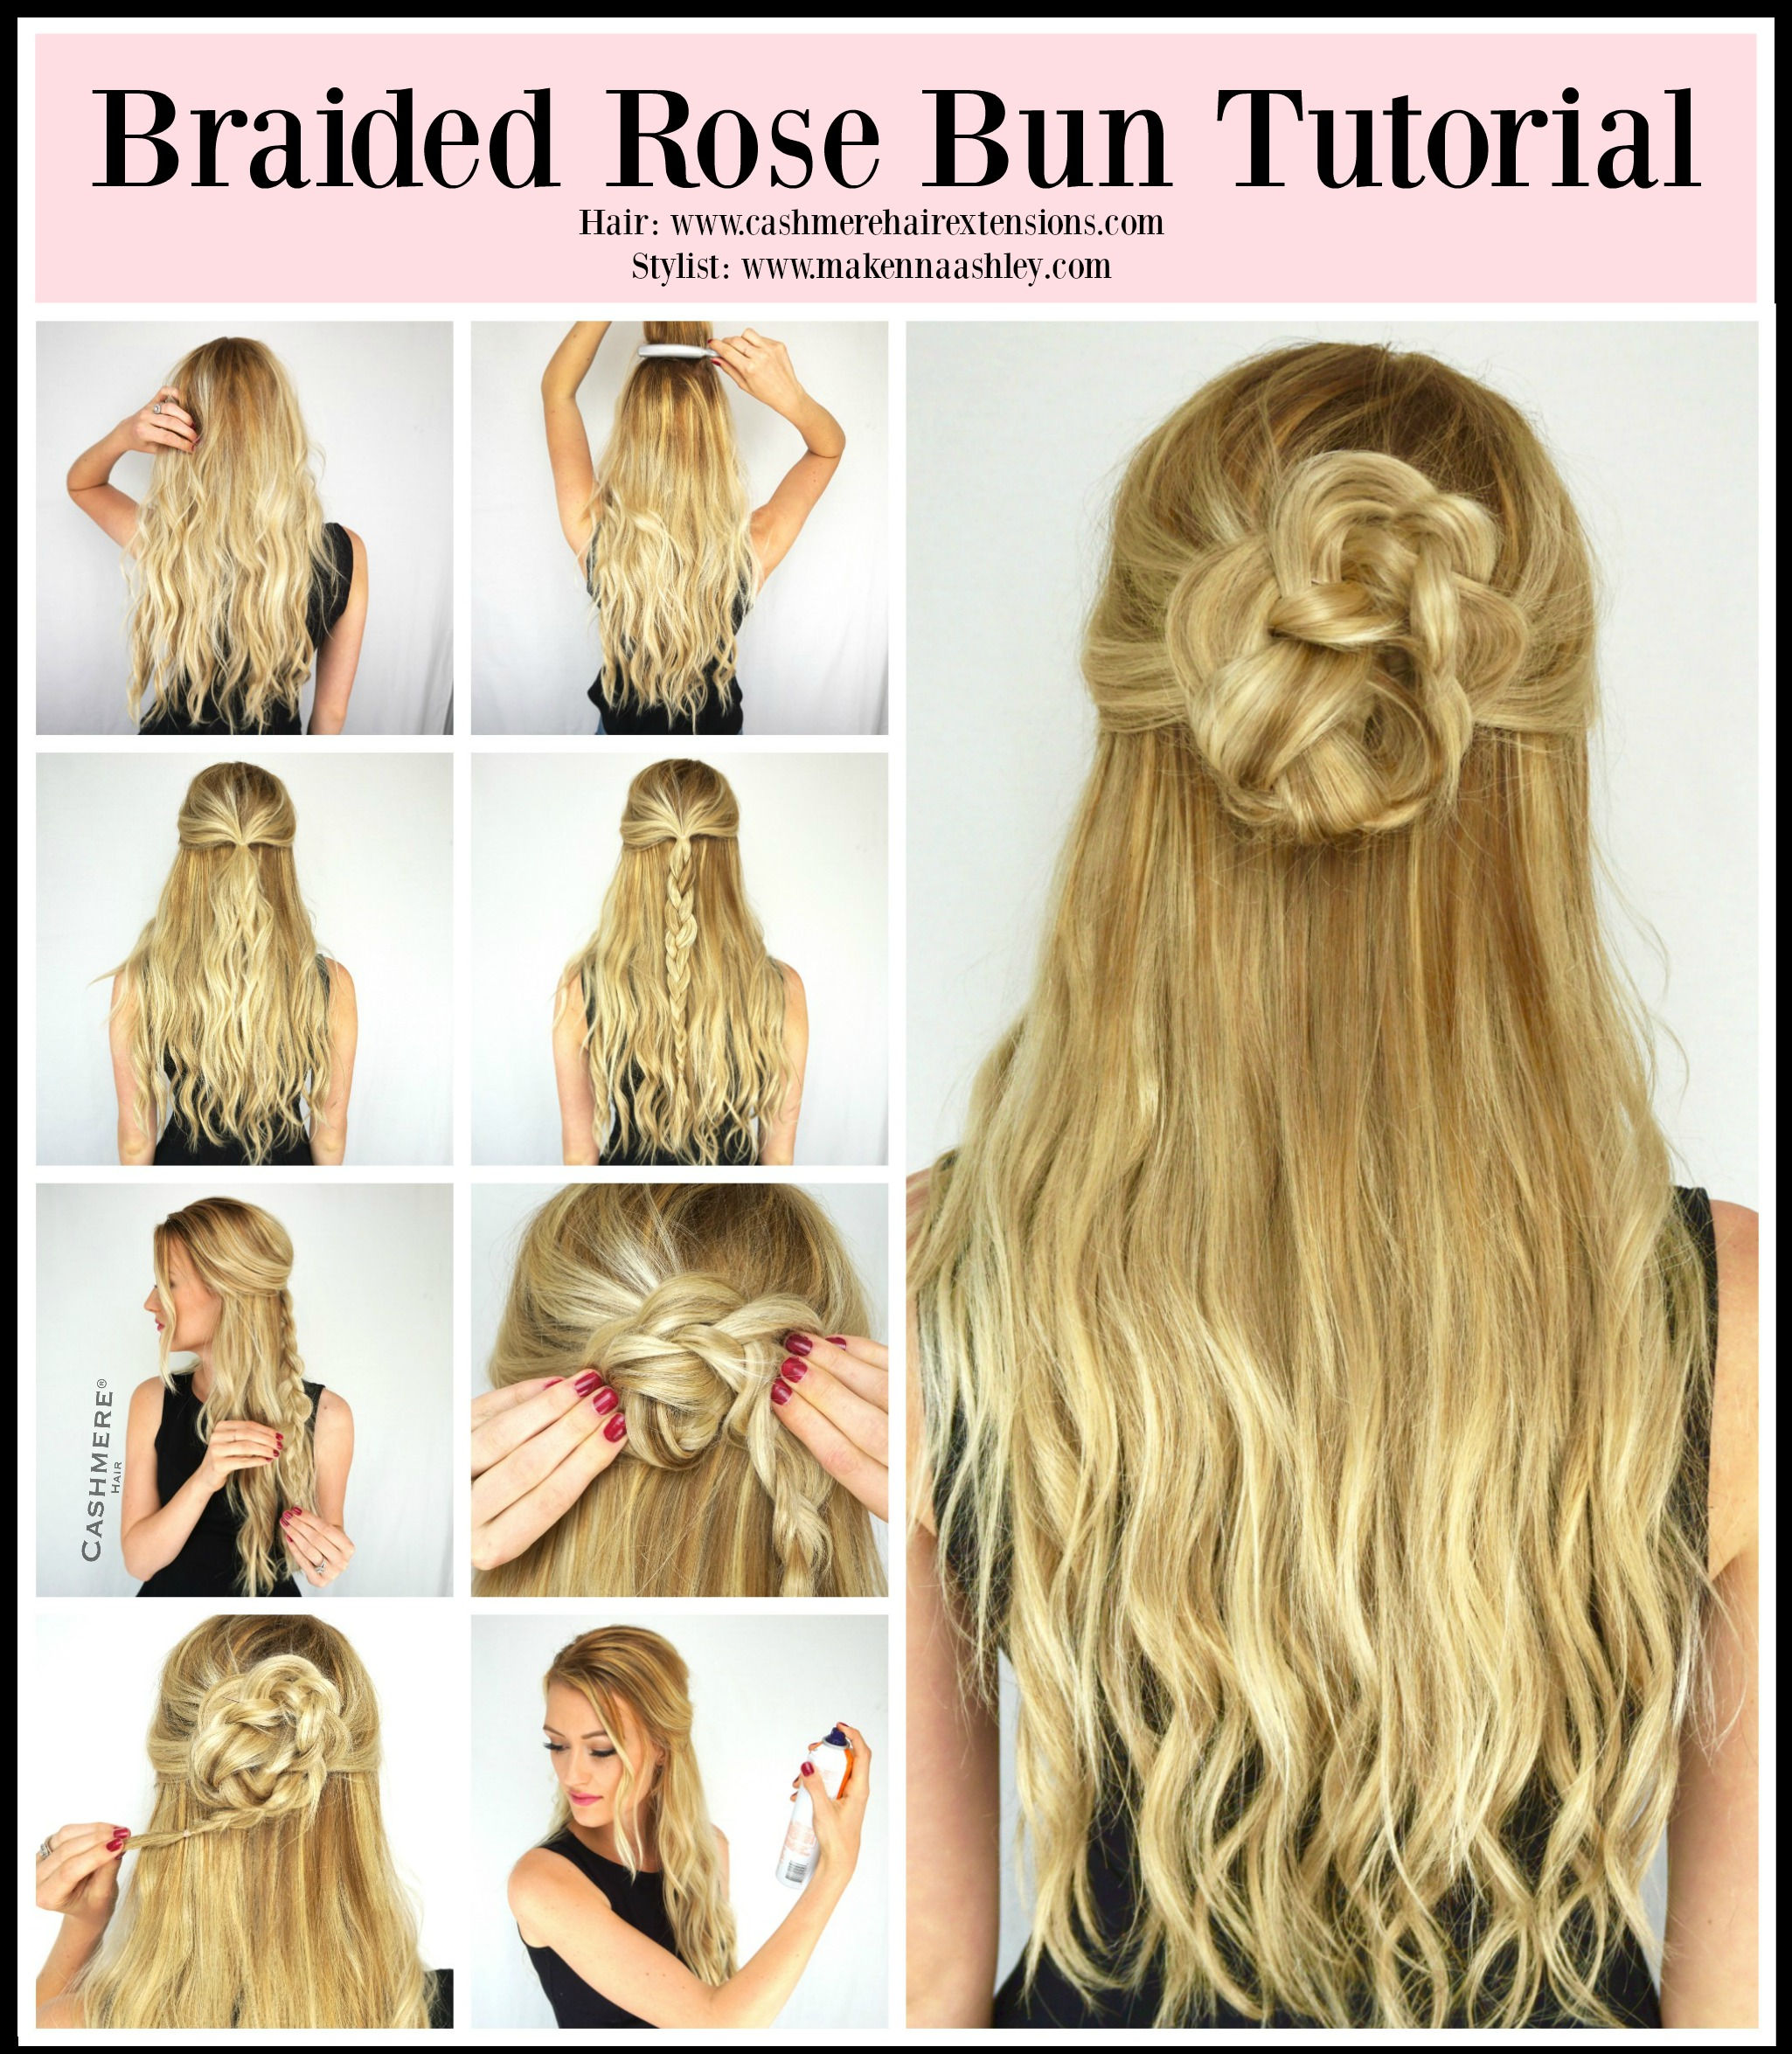 Braided Rose Bun Tutorial Cashmere Hair Clip In Extensions